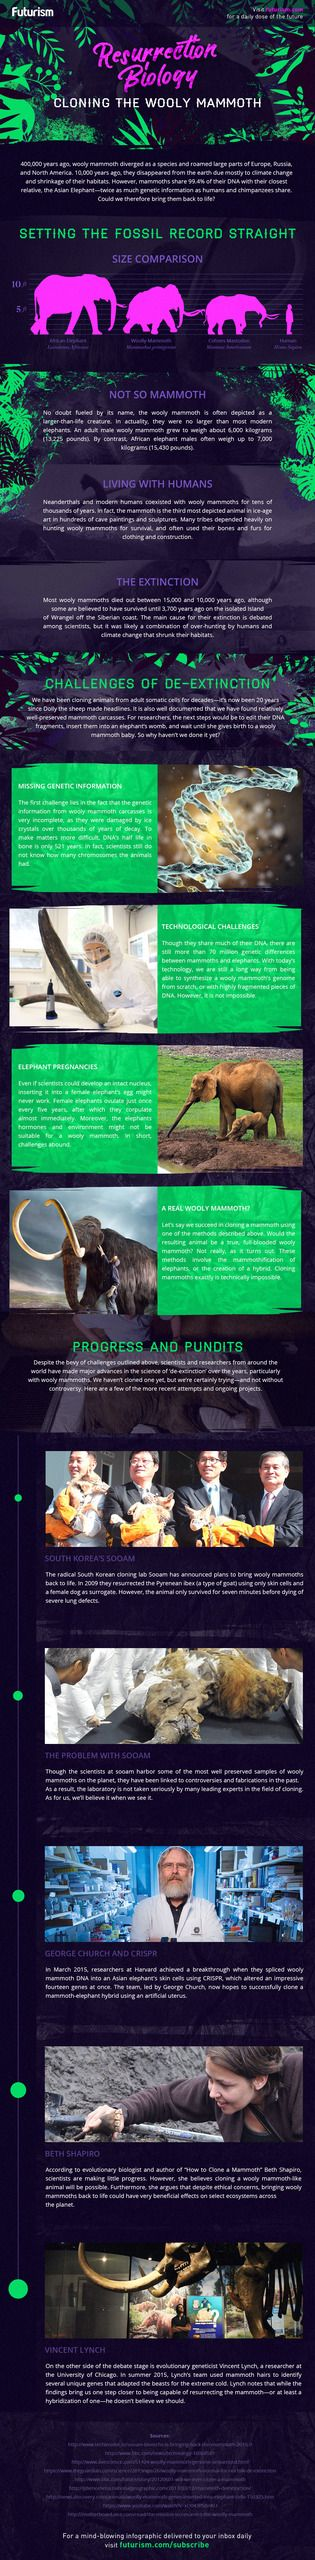 Resurrection Biology: Cloning the Wooly Mammoth (INFOGRAPHIC):  Resurrecting an ancient elephant is a mammoth undertaking. Will scientists ever be able to do it?http://futurism.com/images/resurrection-biology-cloning-wooly-mammoth/?utm_campaign=coschedule&utm_source=pinterest&utm_medium=Futurism&utm_content=Resurrection%20Biology%3A%20Cloning%20the%20Wooly%20Mammoth